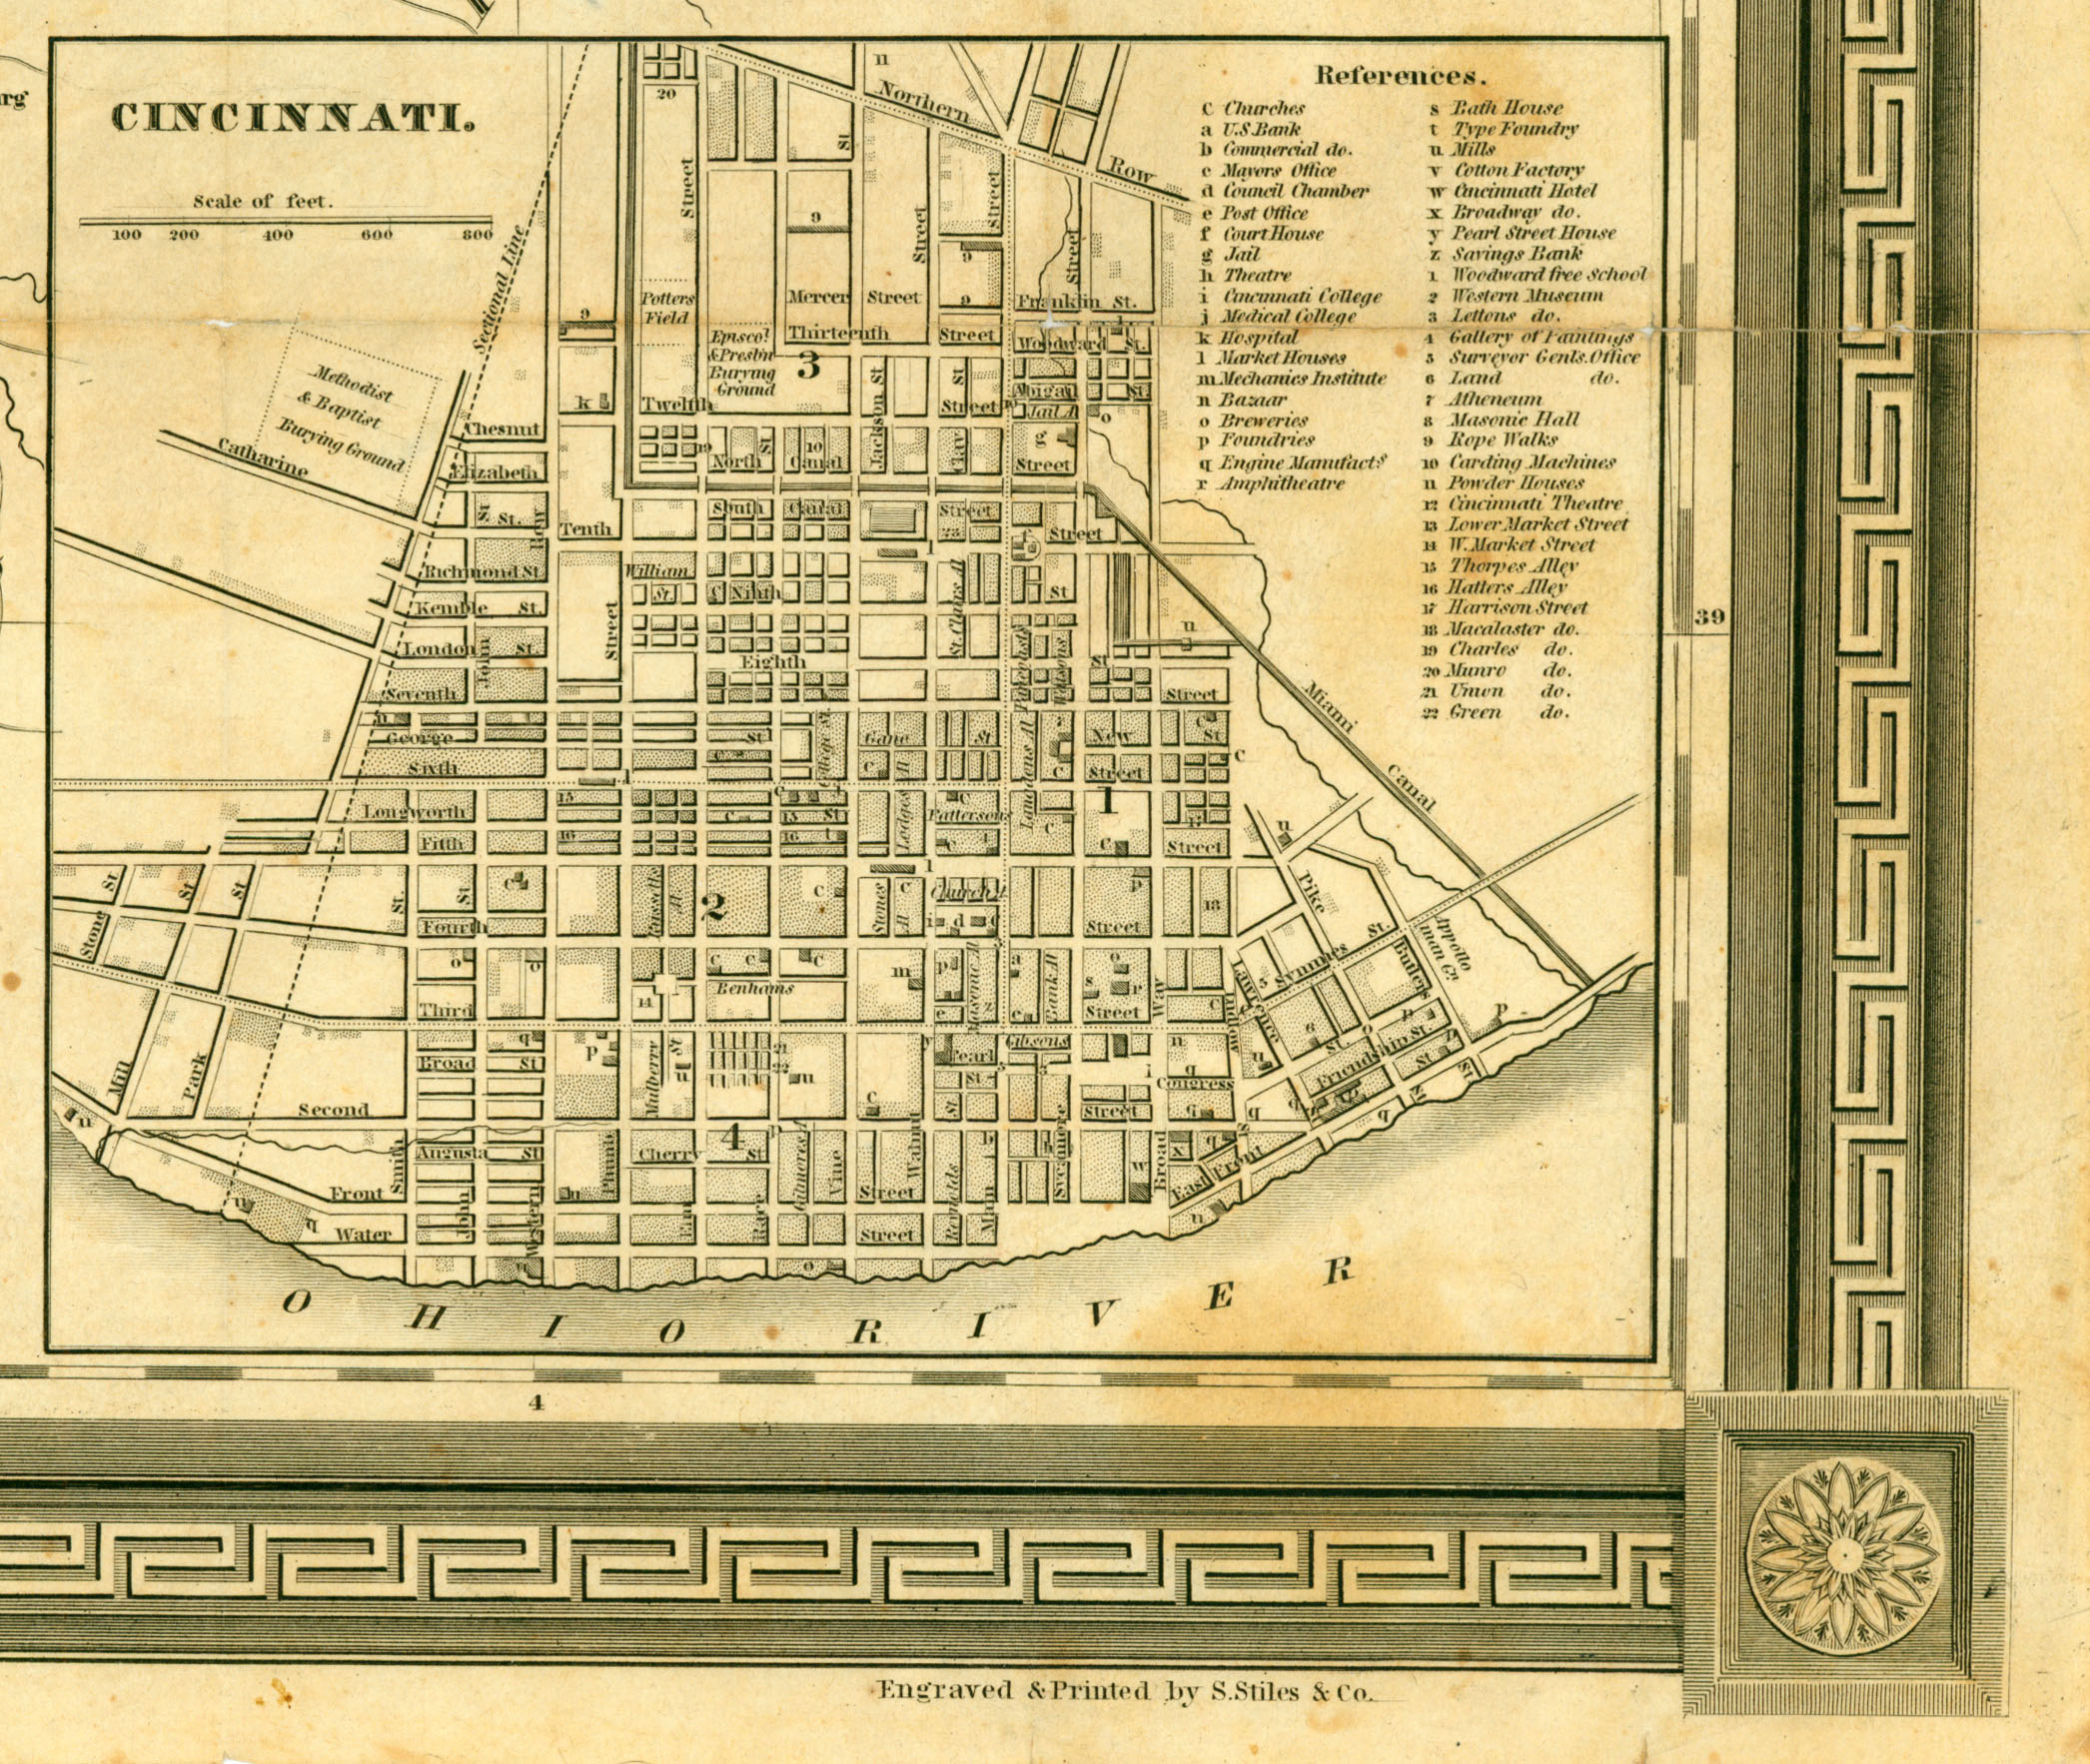 United States Historical City Maps - Perry-Castañeda Map Collection